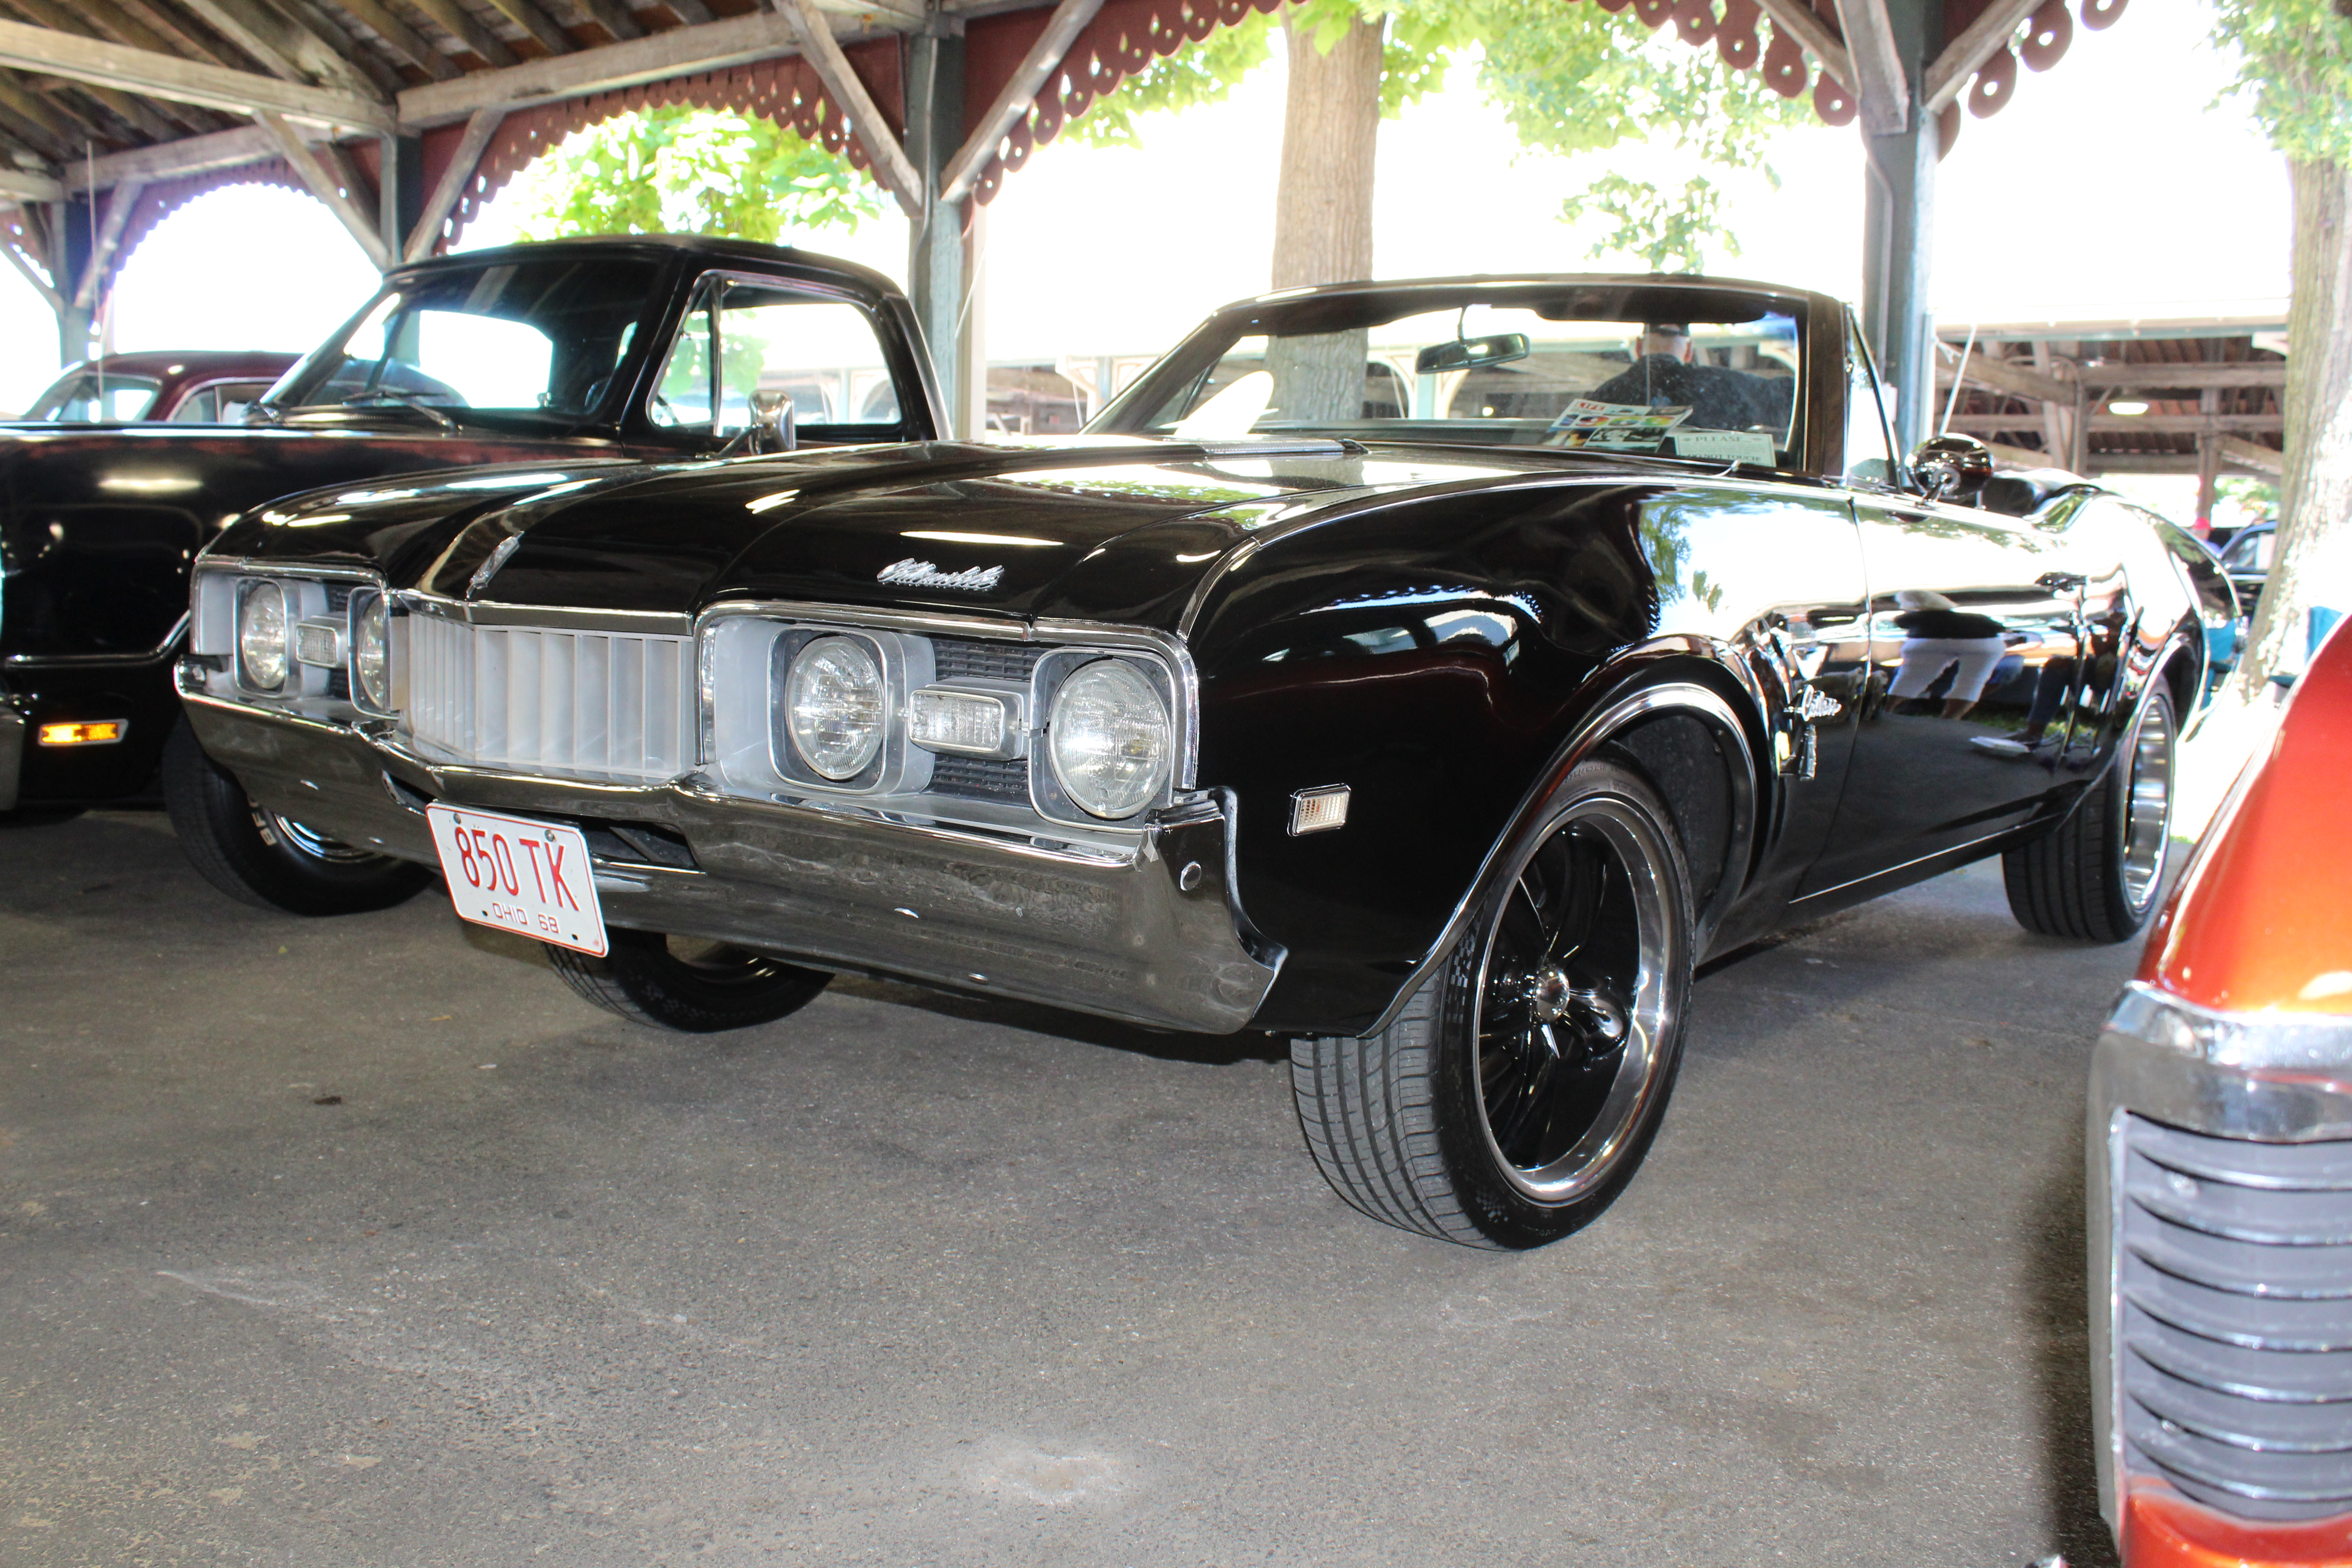 Oldsmobile — Blogs, Pictures, and more on WordPress